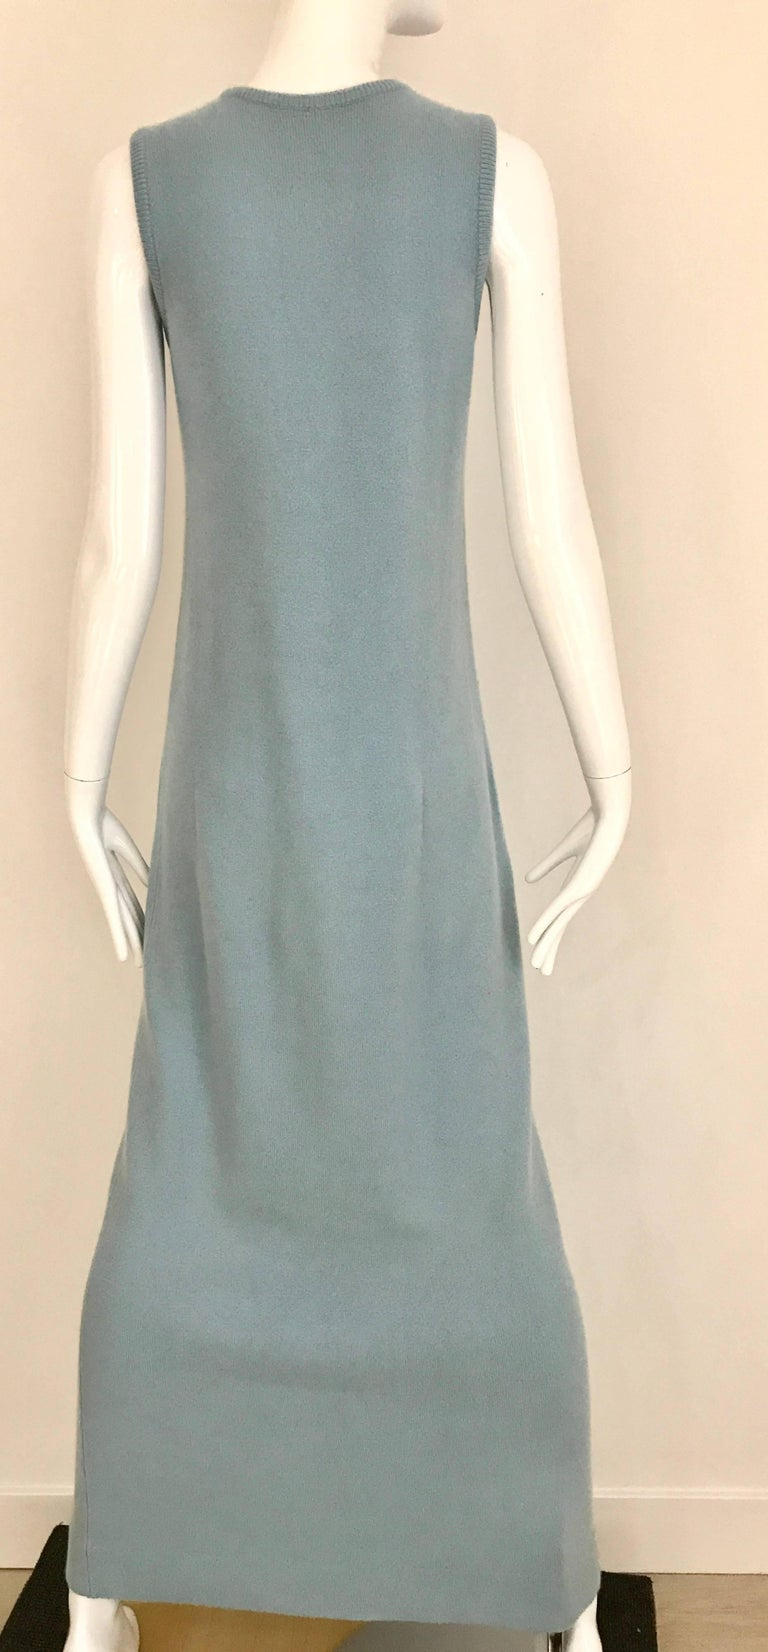 1970s HALSTON Baby Blue Sleeveless Cashmere Vintage Sweater 70s Dress For Sale 2